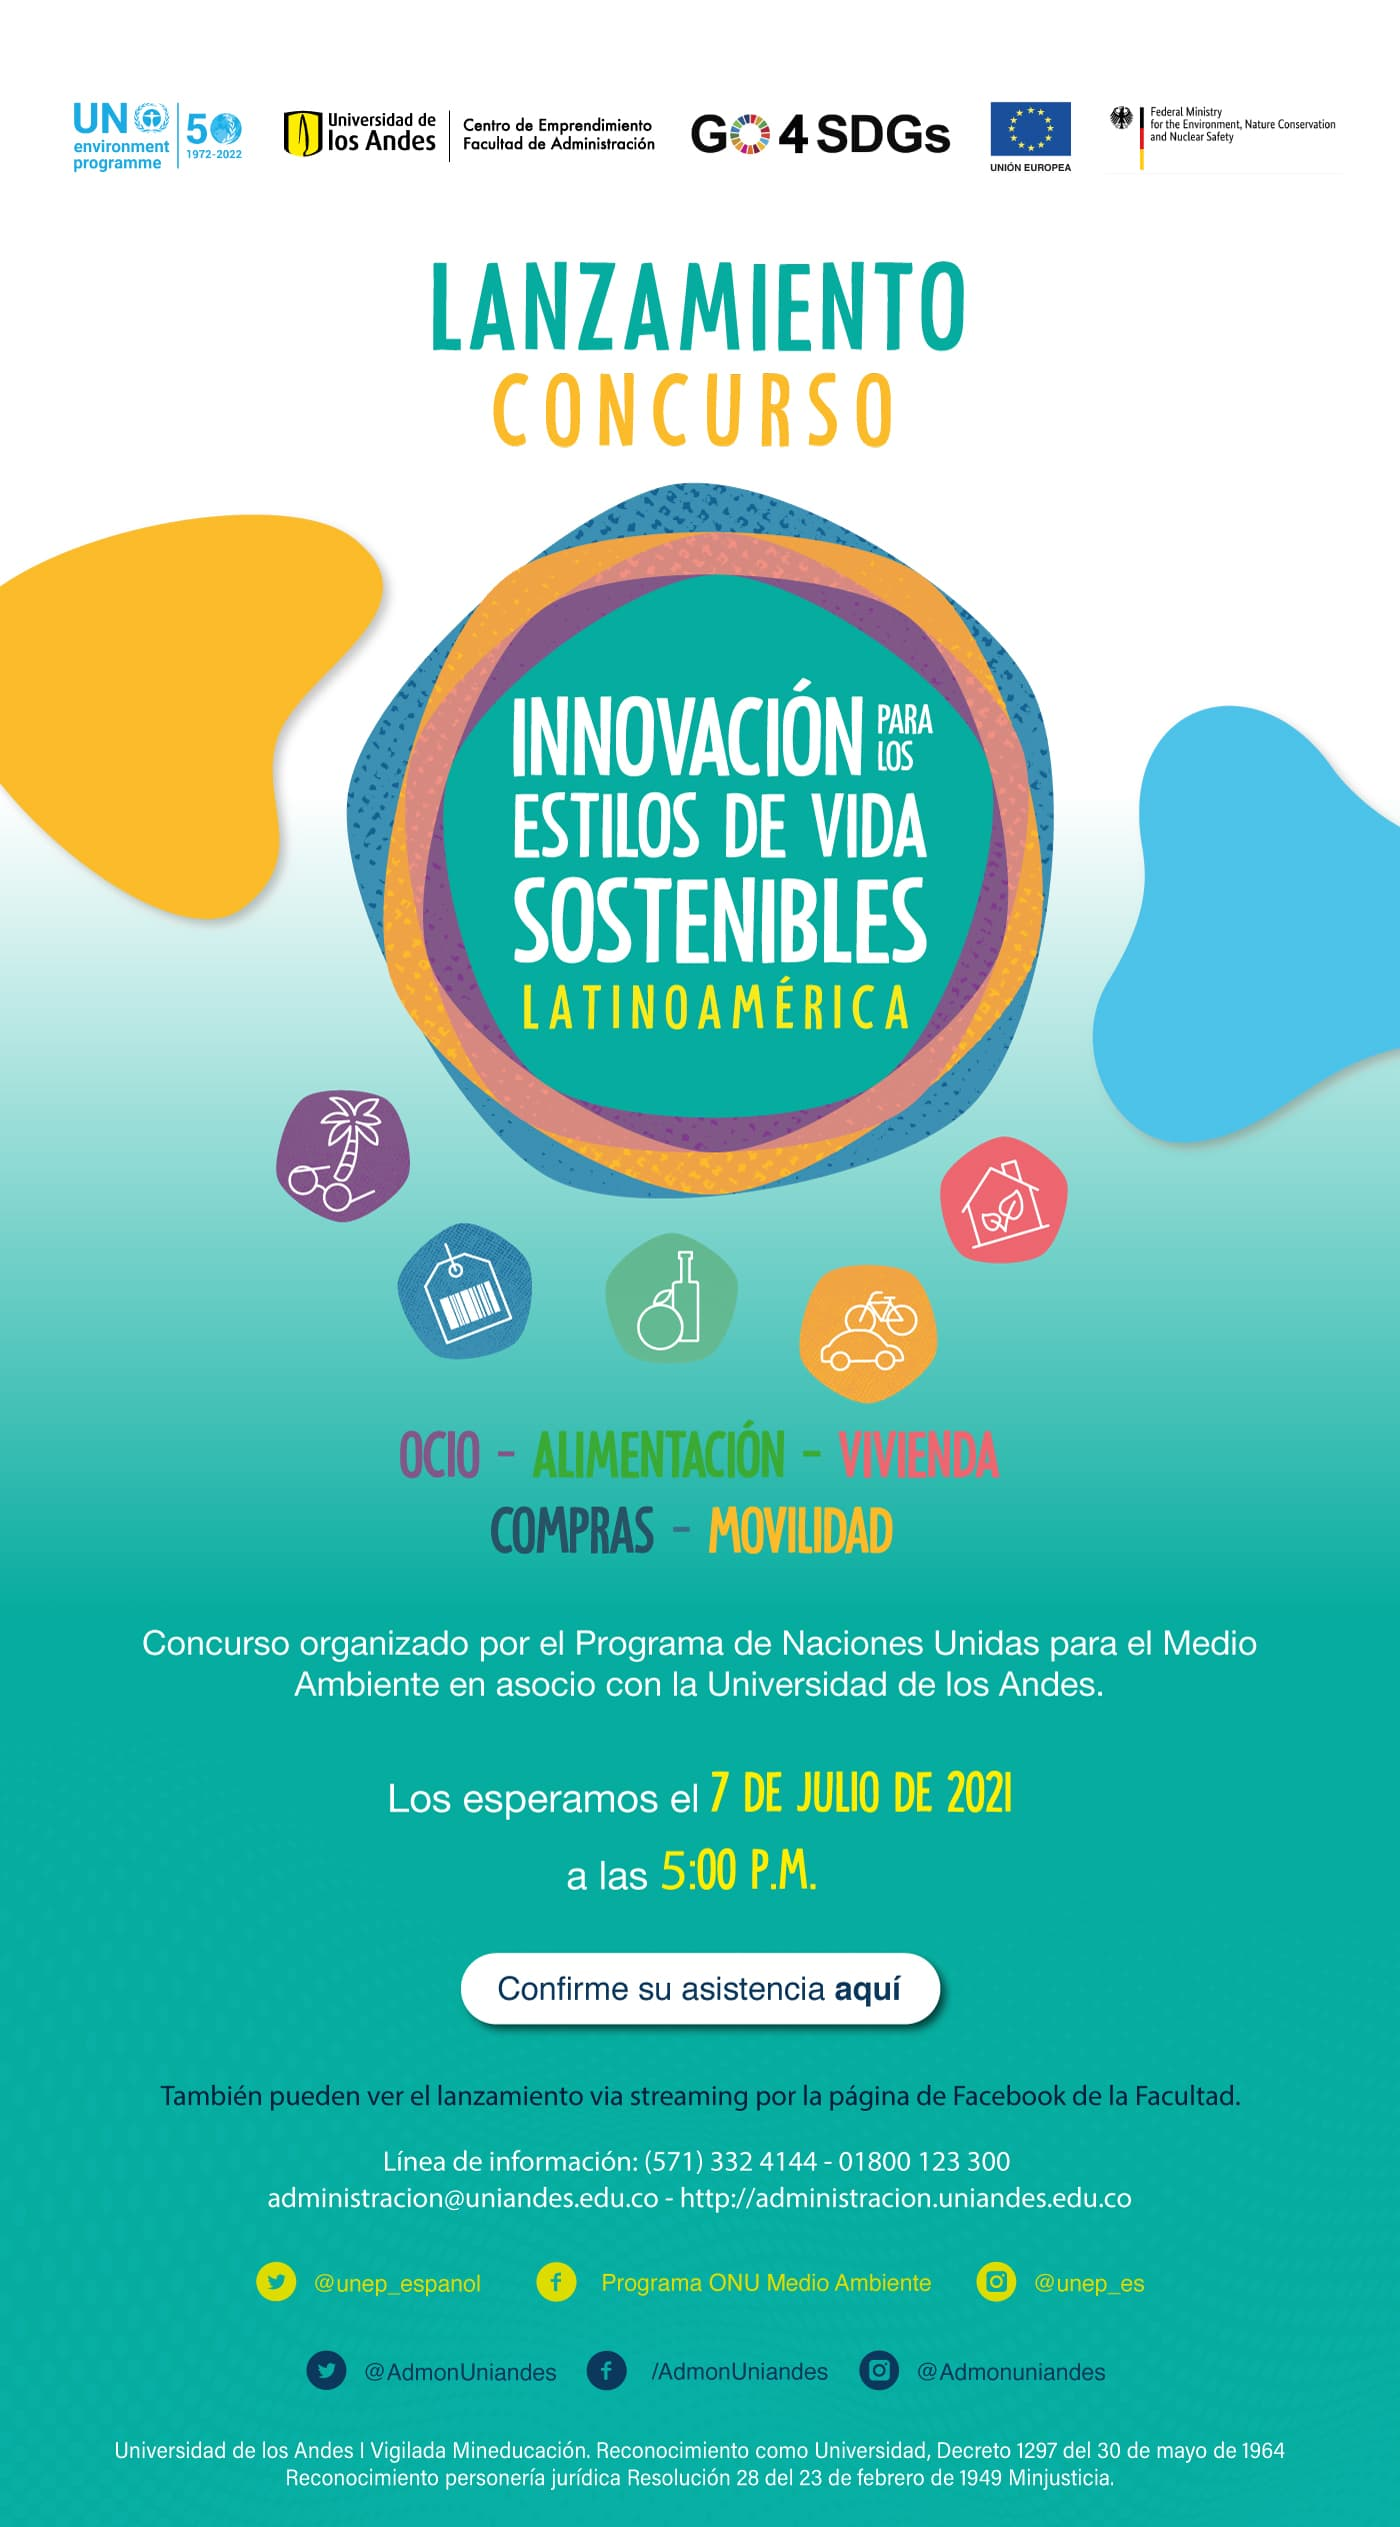 UNEP and Universidad de los Andes to support university students with sustainable business ideas in Latin America